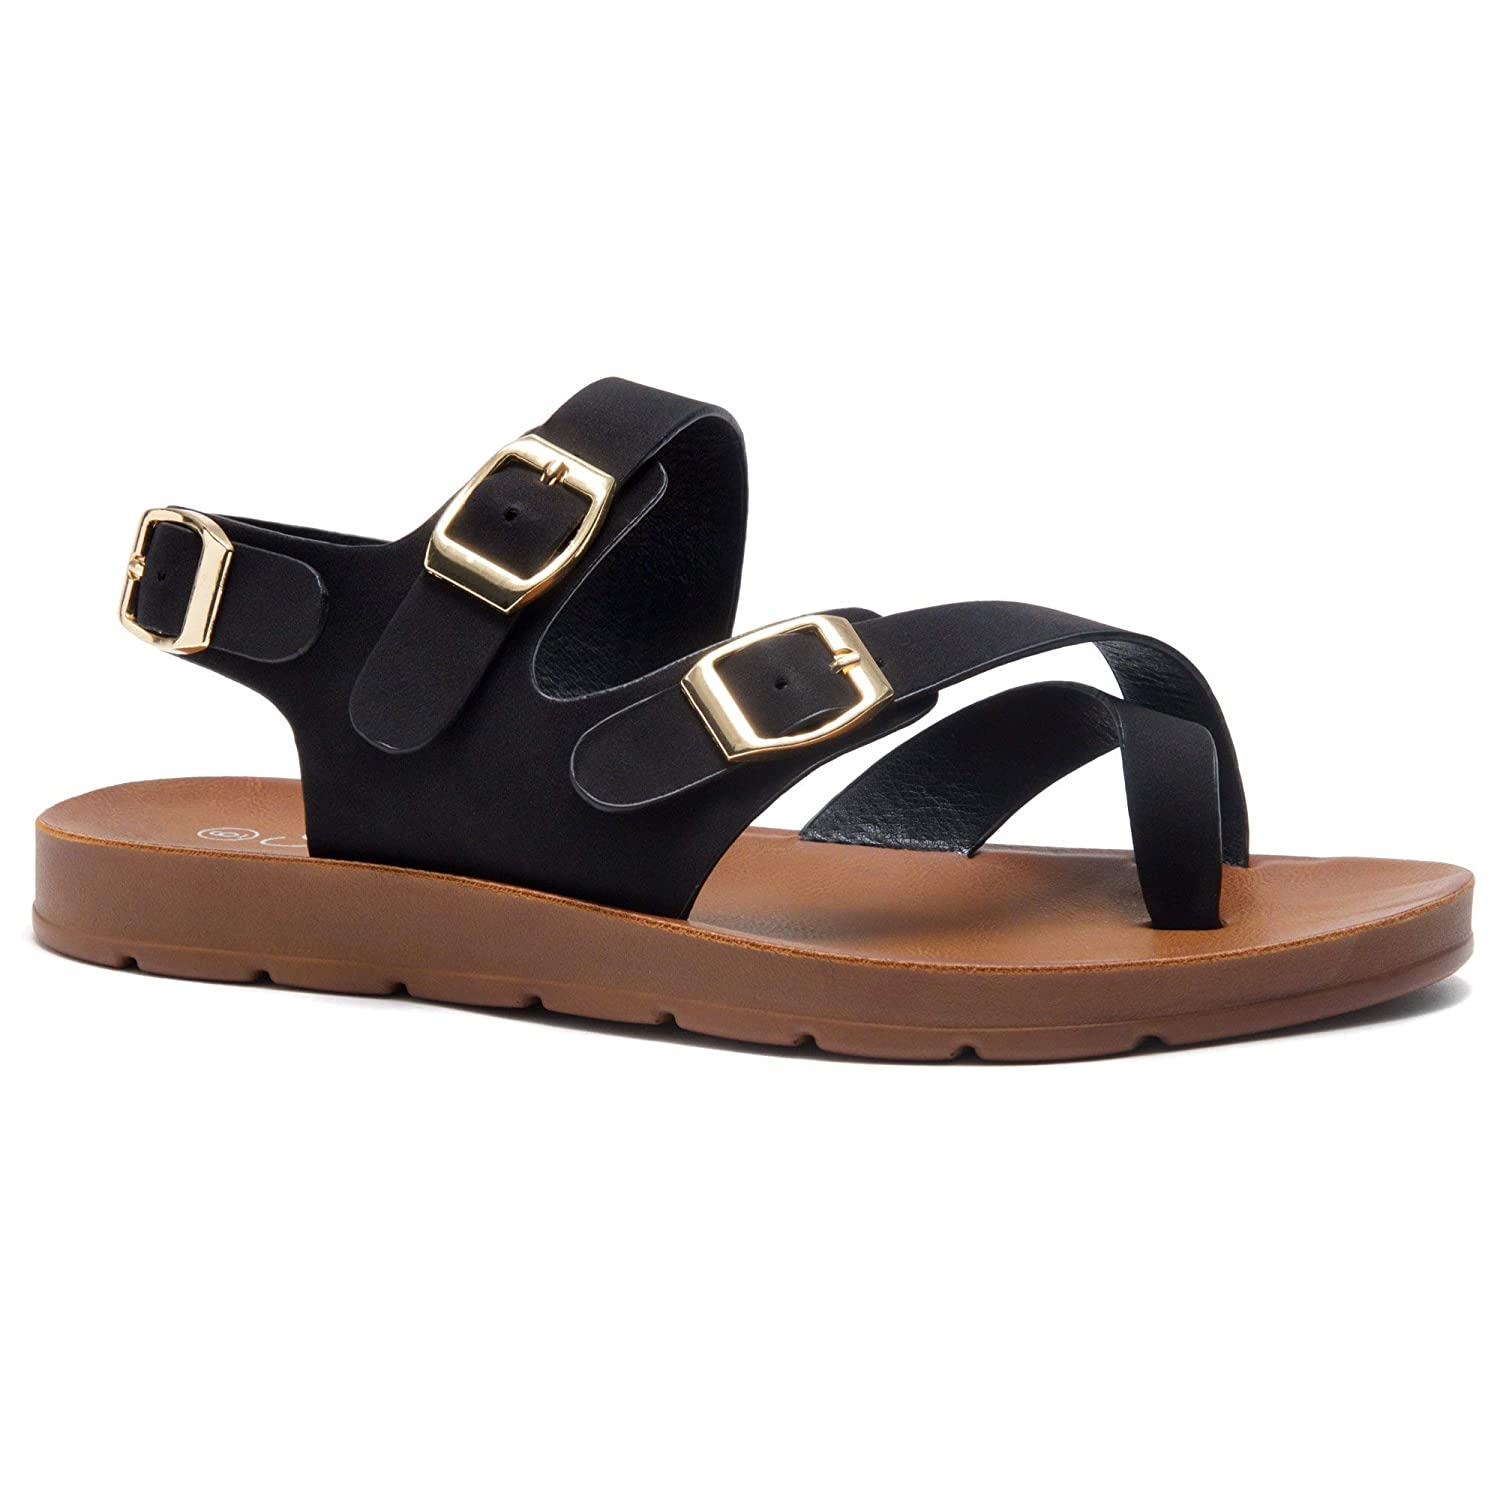 80bcdcb0fc6 Amazon.com  Herstyle Sure Thing Women s Fashion Buckle with Ankle Strap Flat  Sandals Greek Platform Low Wedge Shoes  Shoes